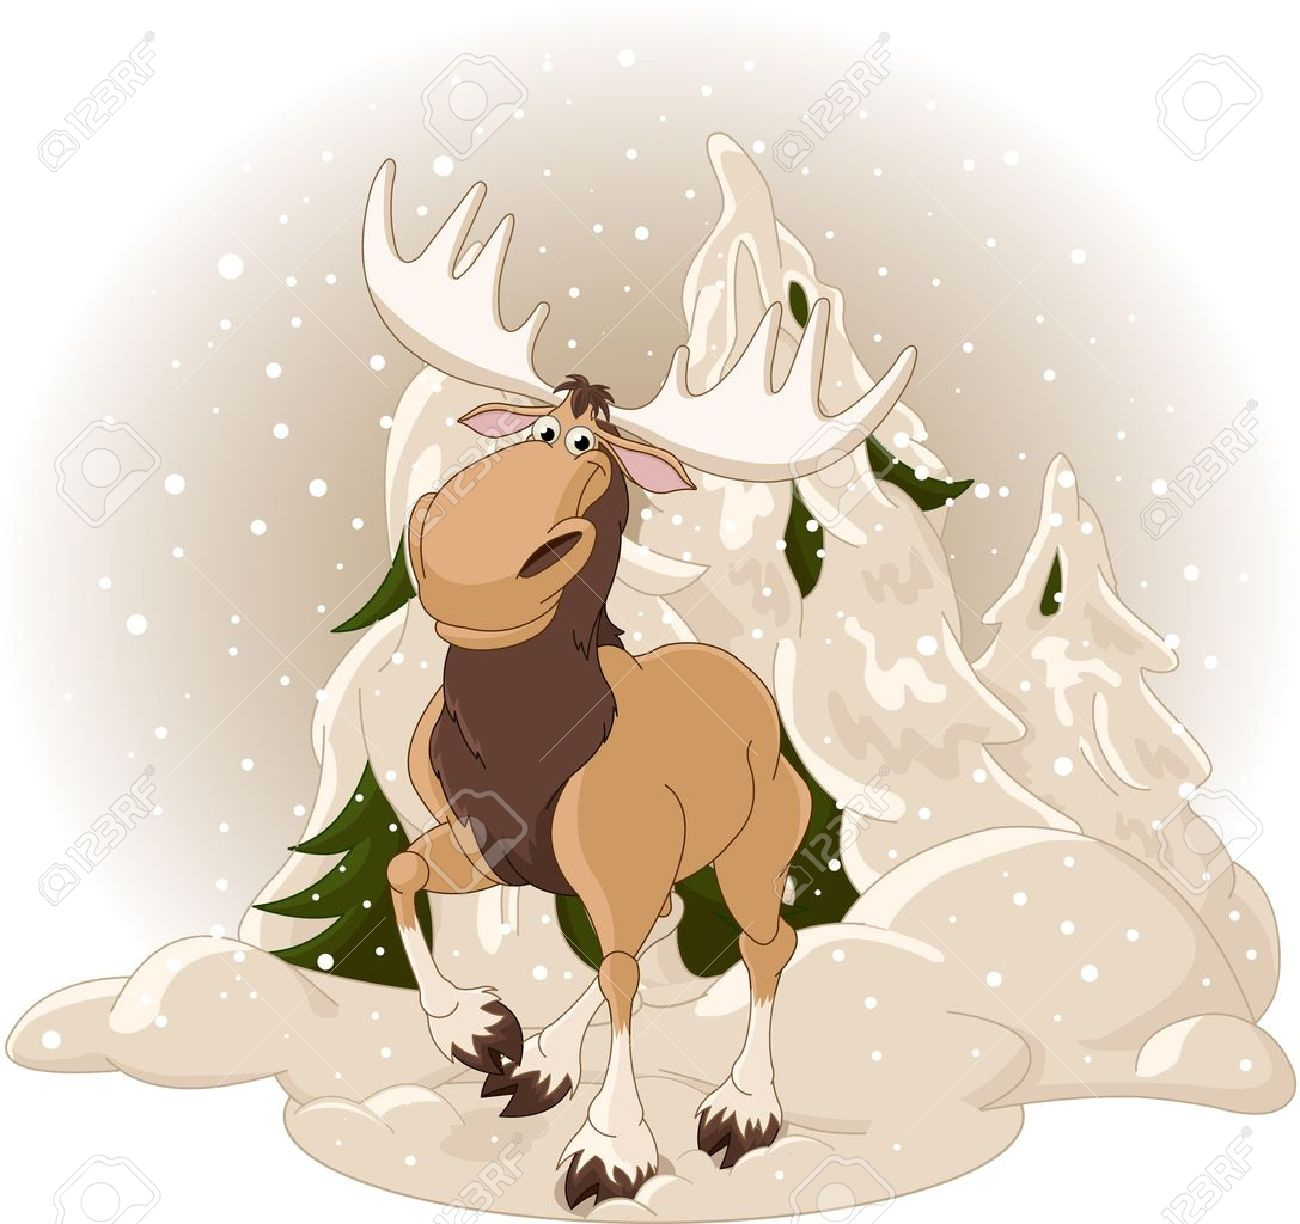 Right winter design with moose against a snowy forest background Stock Vector - 8459197